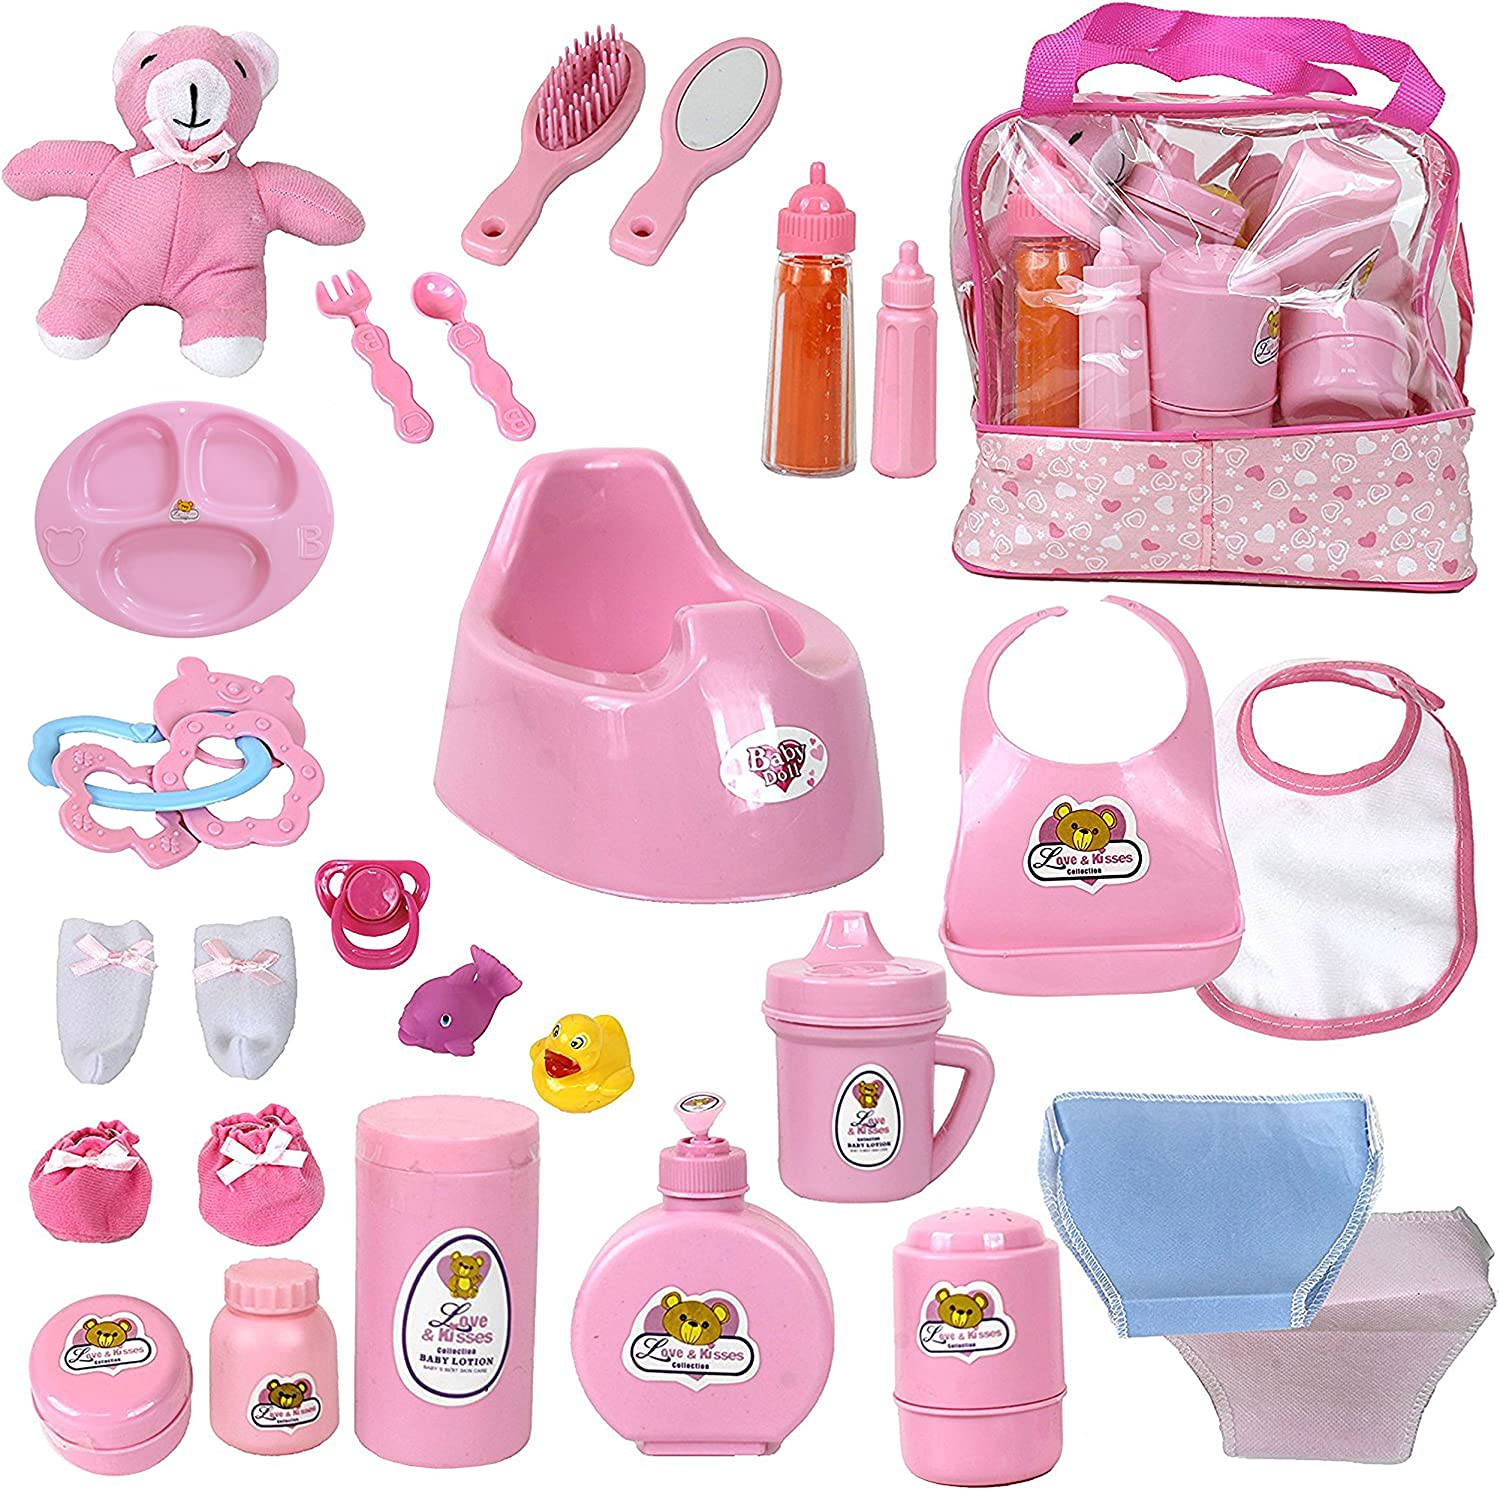 Mommy Me Baby Choice Doll Feeding Incl Changing and Accessories Free shipping anywhere in the nation Set